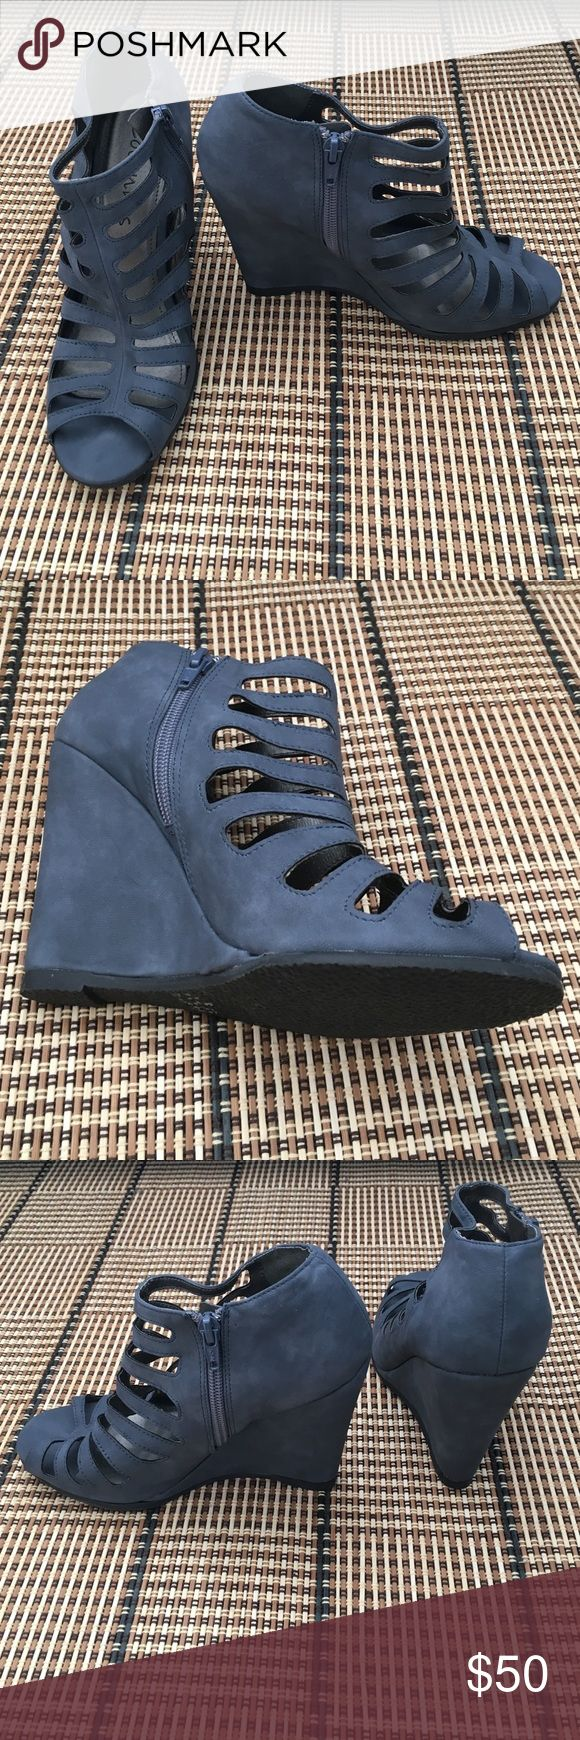 "*Brand New* gorgeous blue wedges These are brand new without the original tags or box. They have never been worn. There are no markings for the size but I'm guessing it's a 7.5 based on the fit. Looks to be about a 4"" wedge height. Coconuts Shoes Wedges"